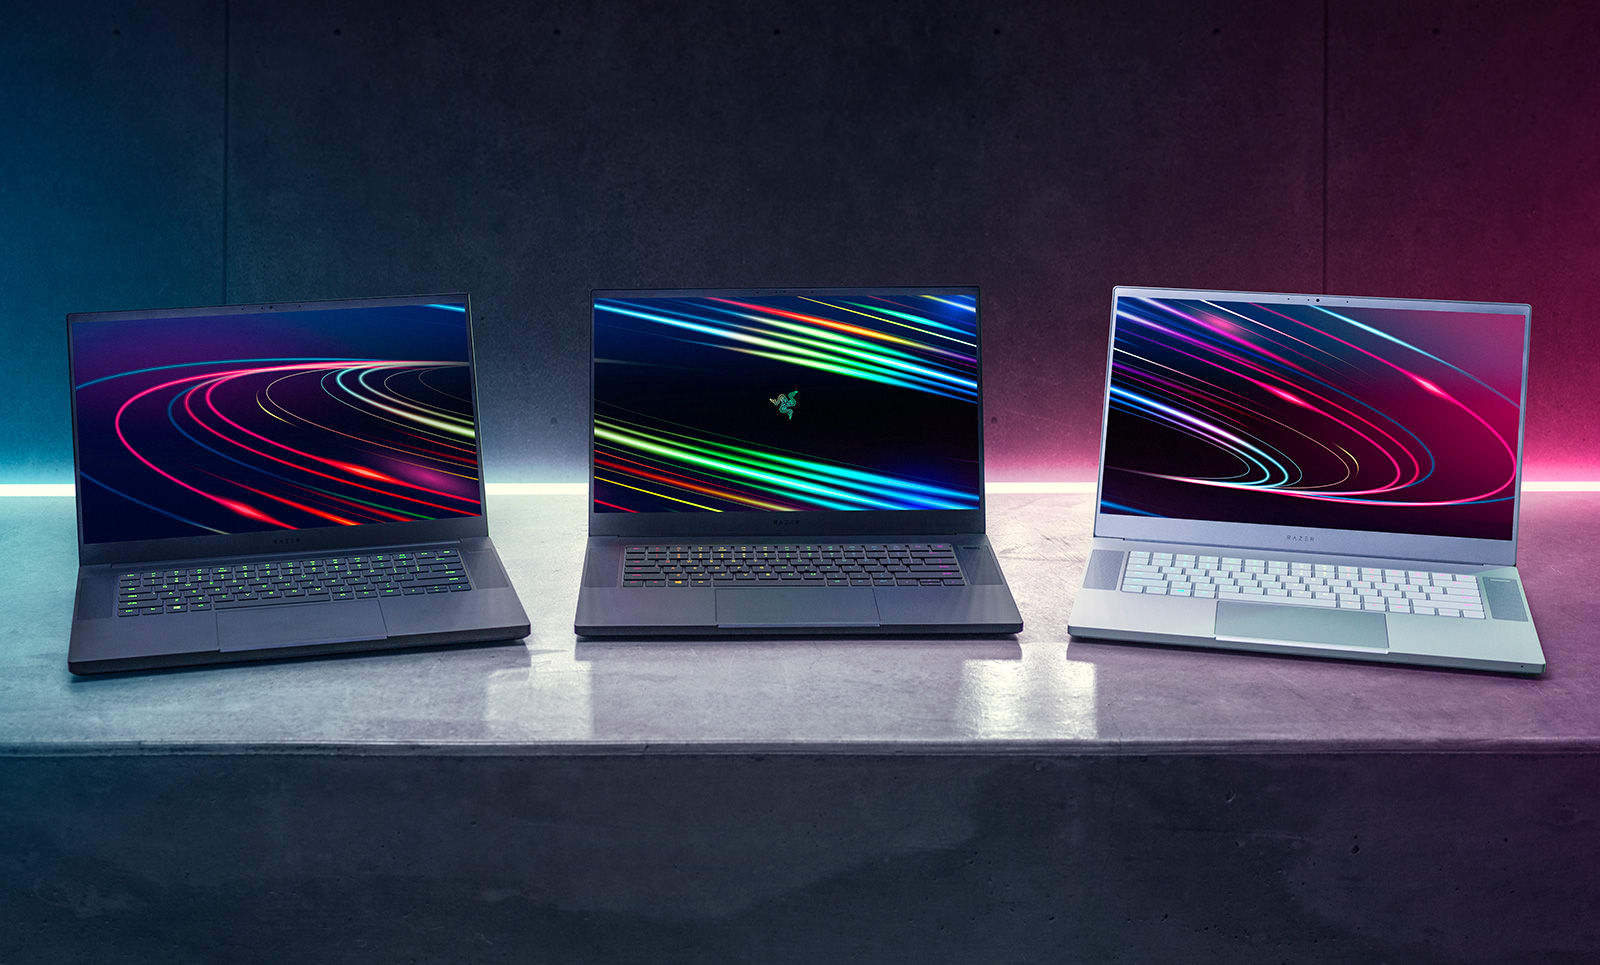 Razer Blade 15 Studio laptops